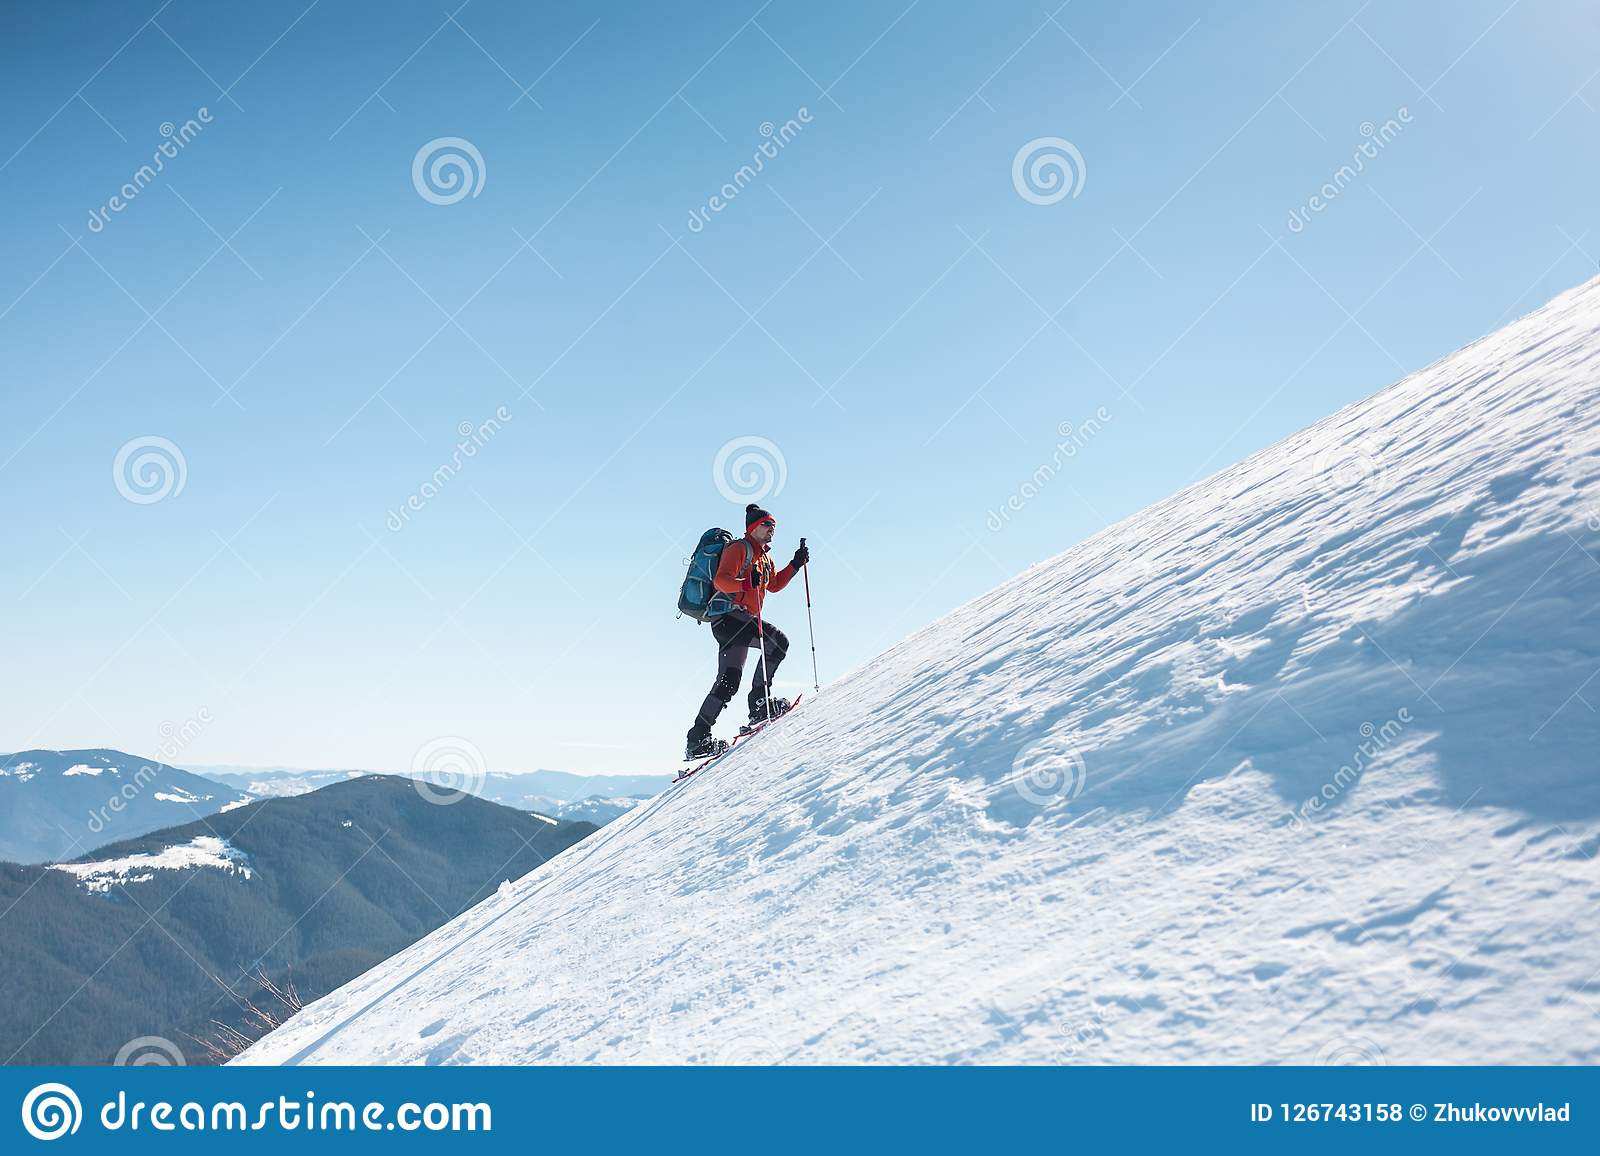 A man climbs to the top of the mountain.